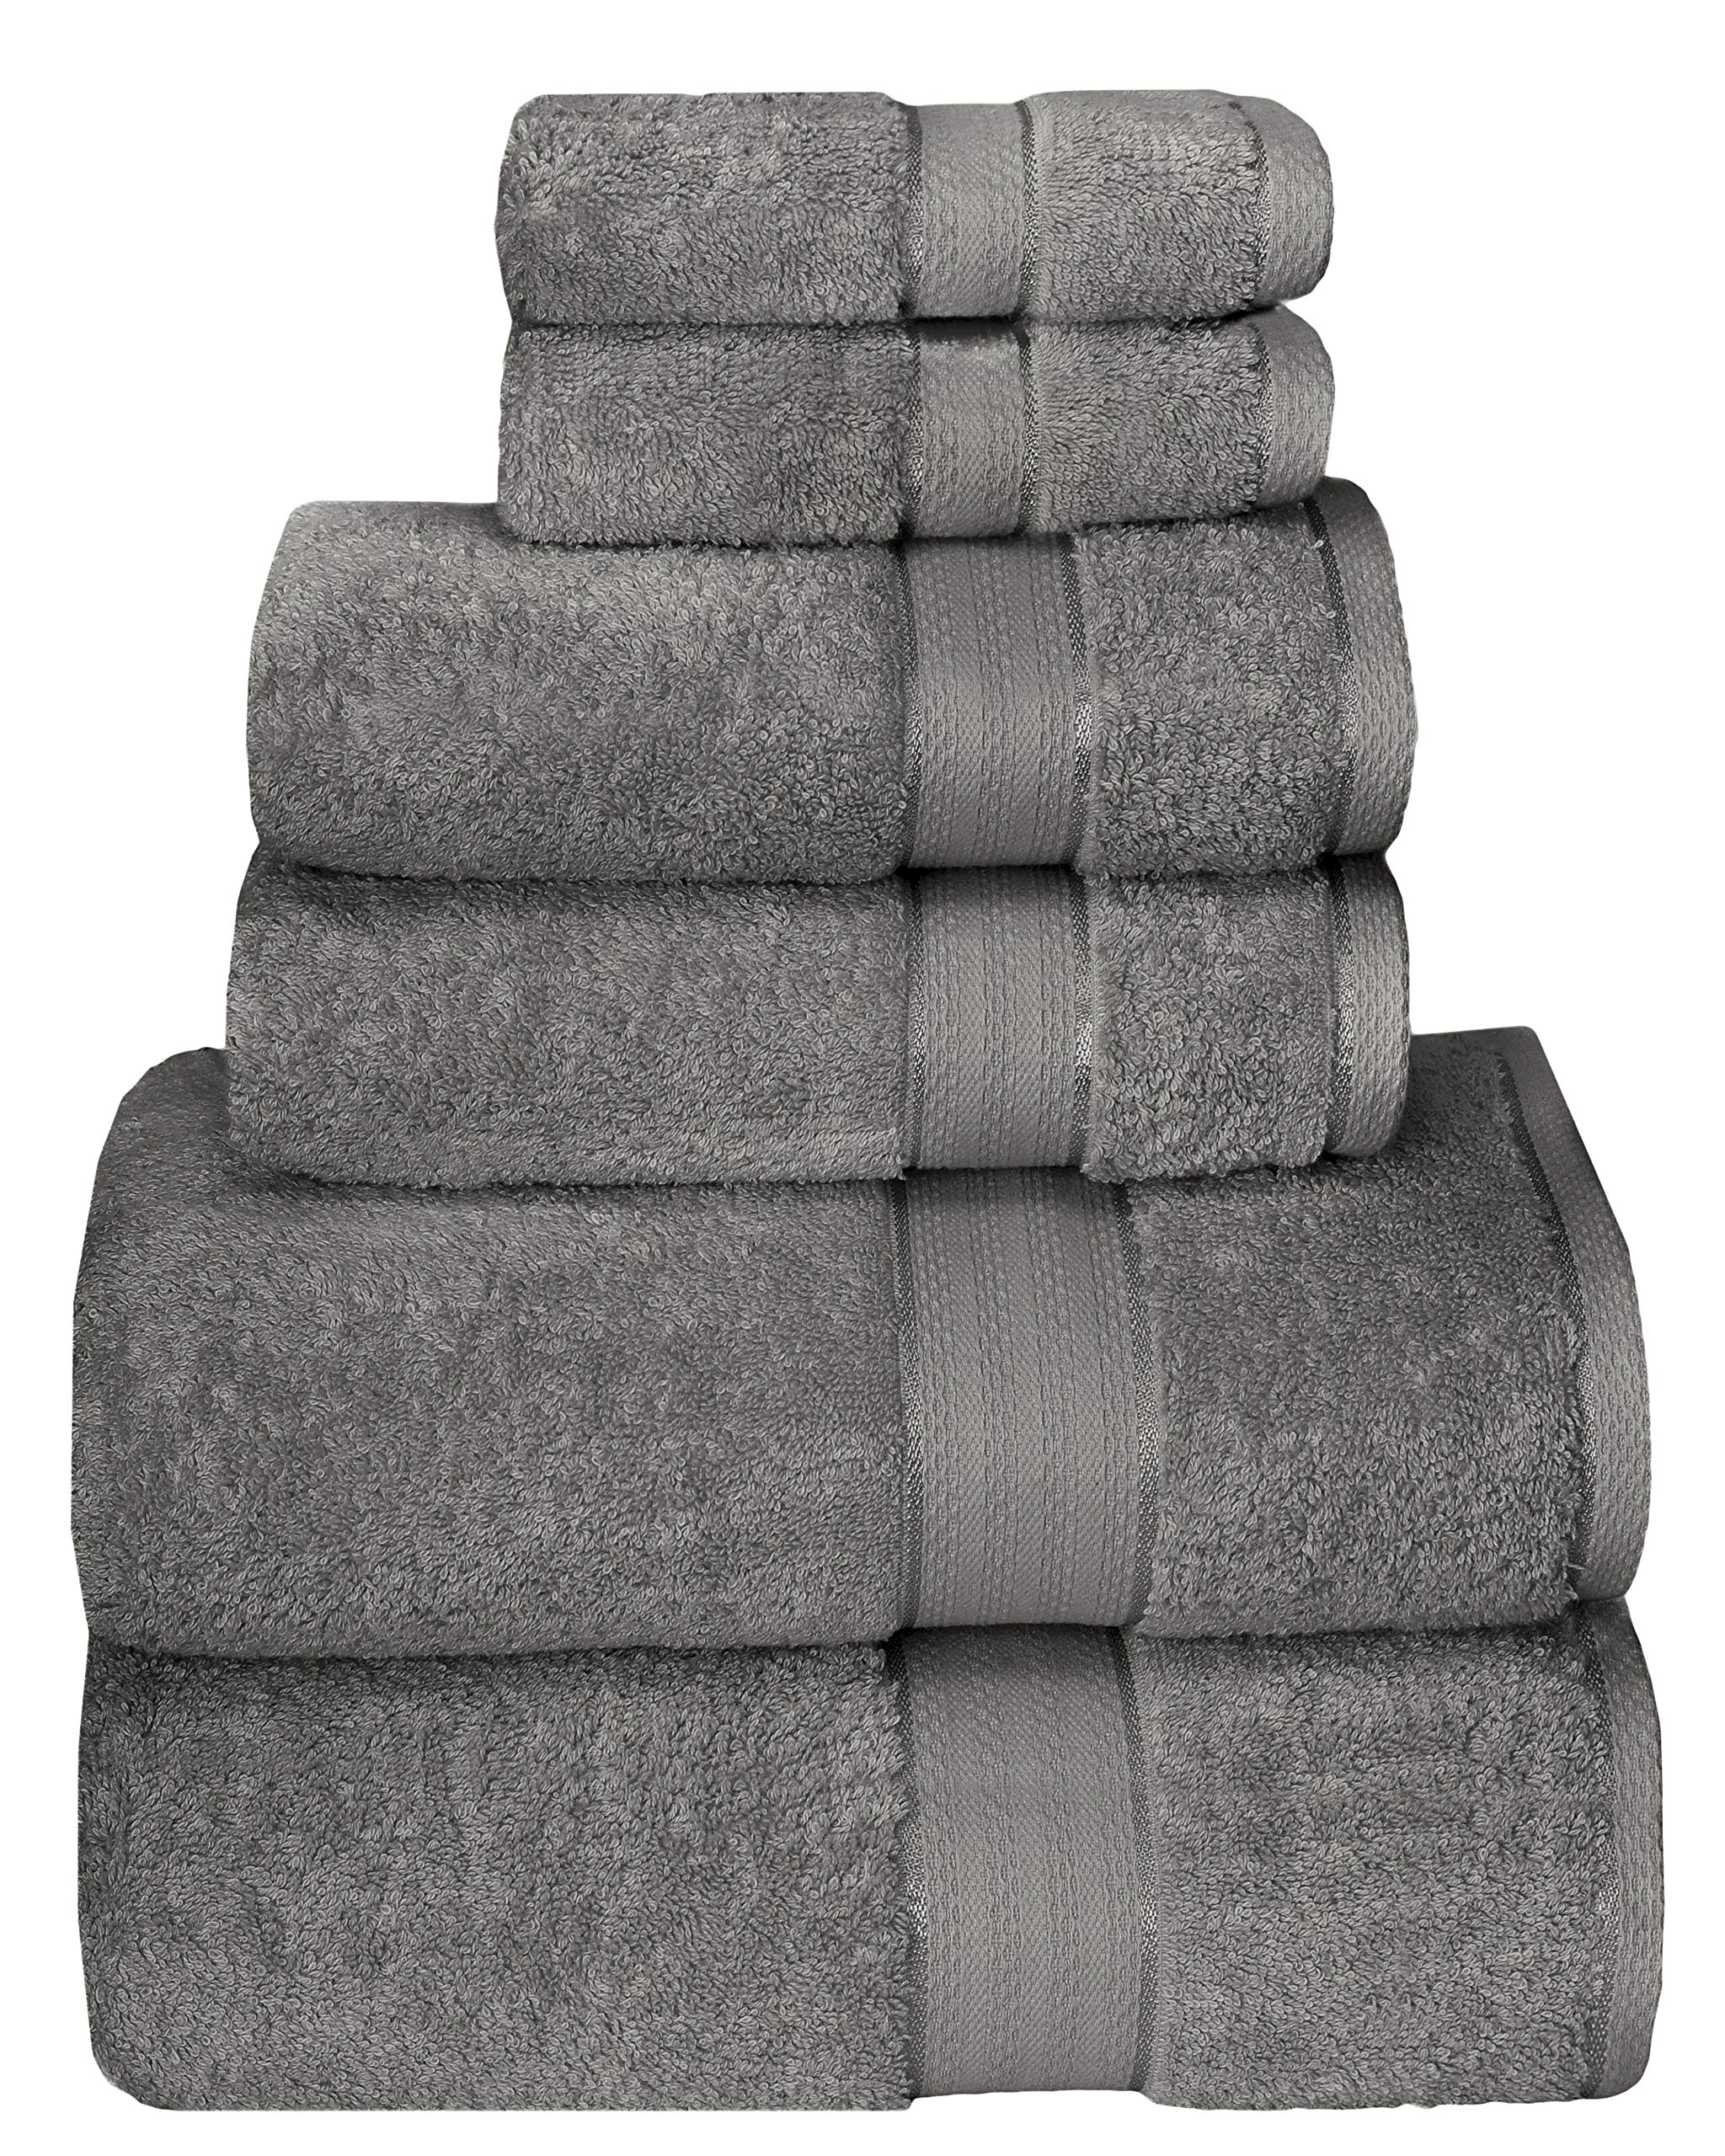 GLAMBURG 700 GSM Premium Cotton 6-Piece Towel Set - 100% Combed Cotton - Luxury Hotel & Spa Quality - Durable Ultra Soft Highly Absorbent - Charcoal Grey